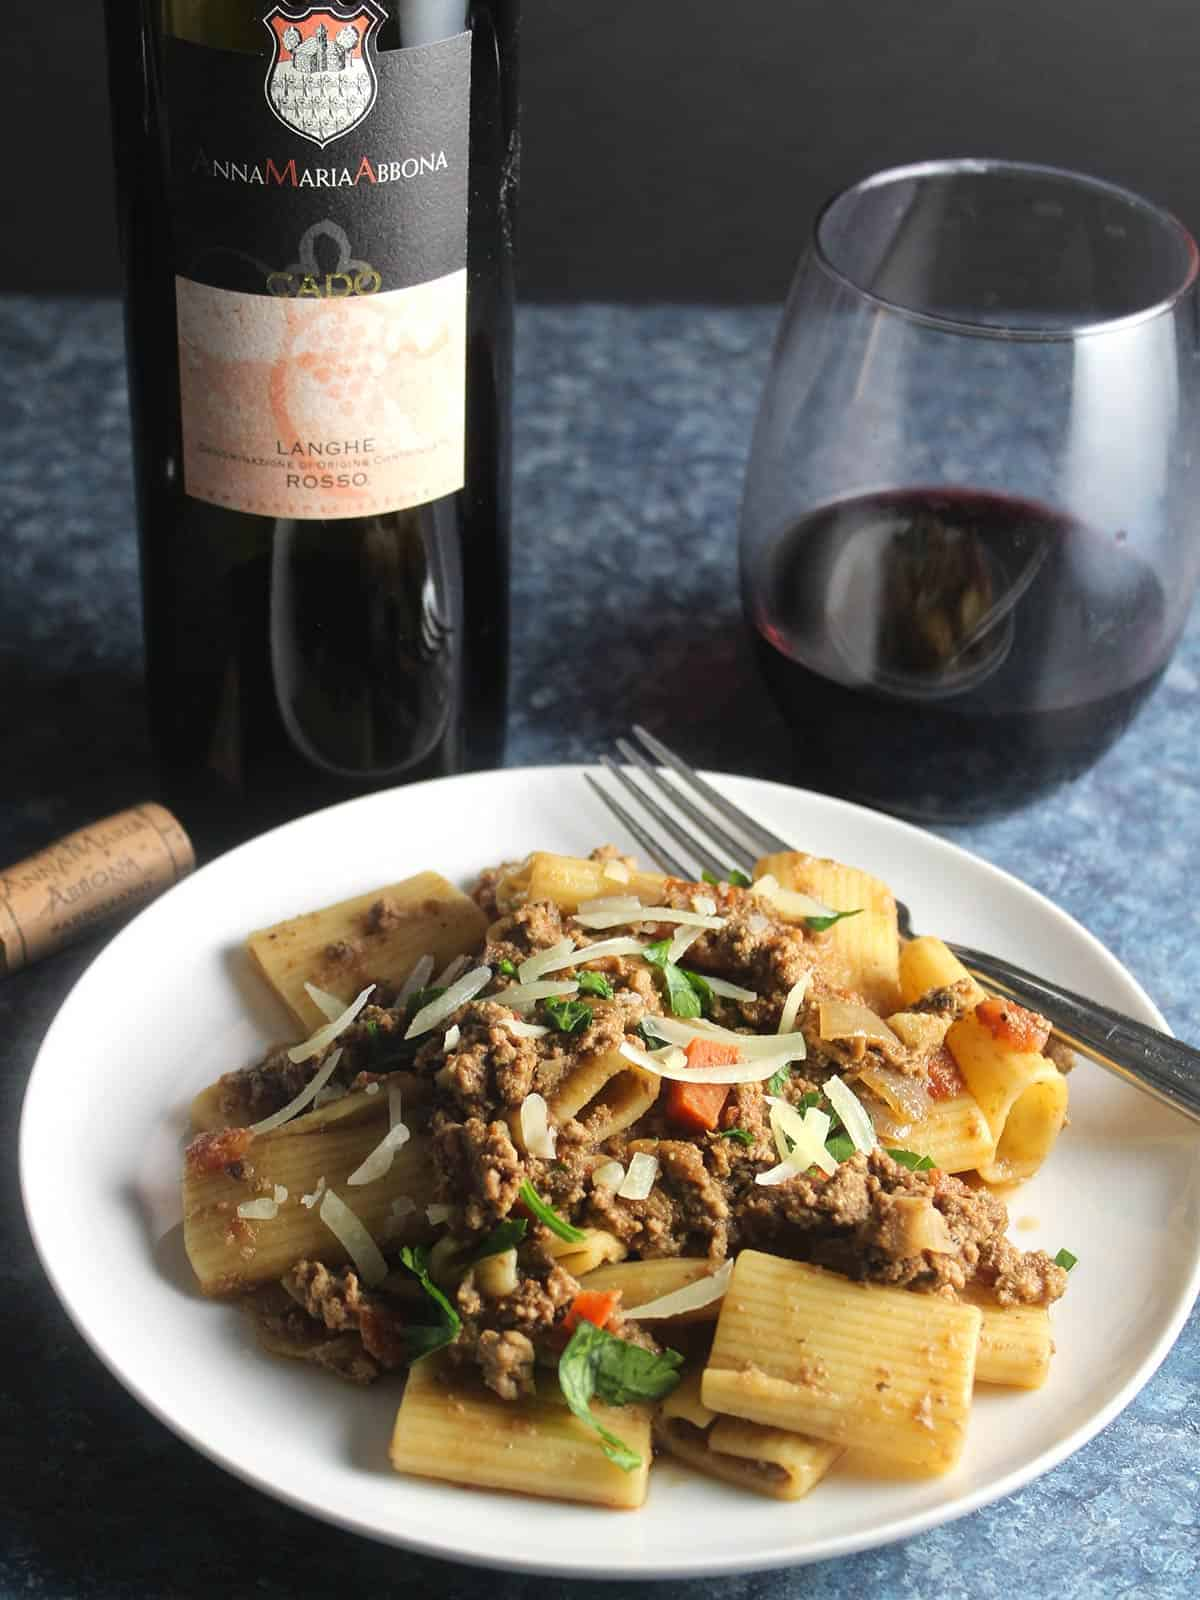 bolognese pasta served with red wine.